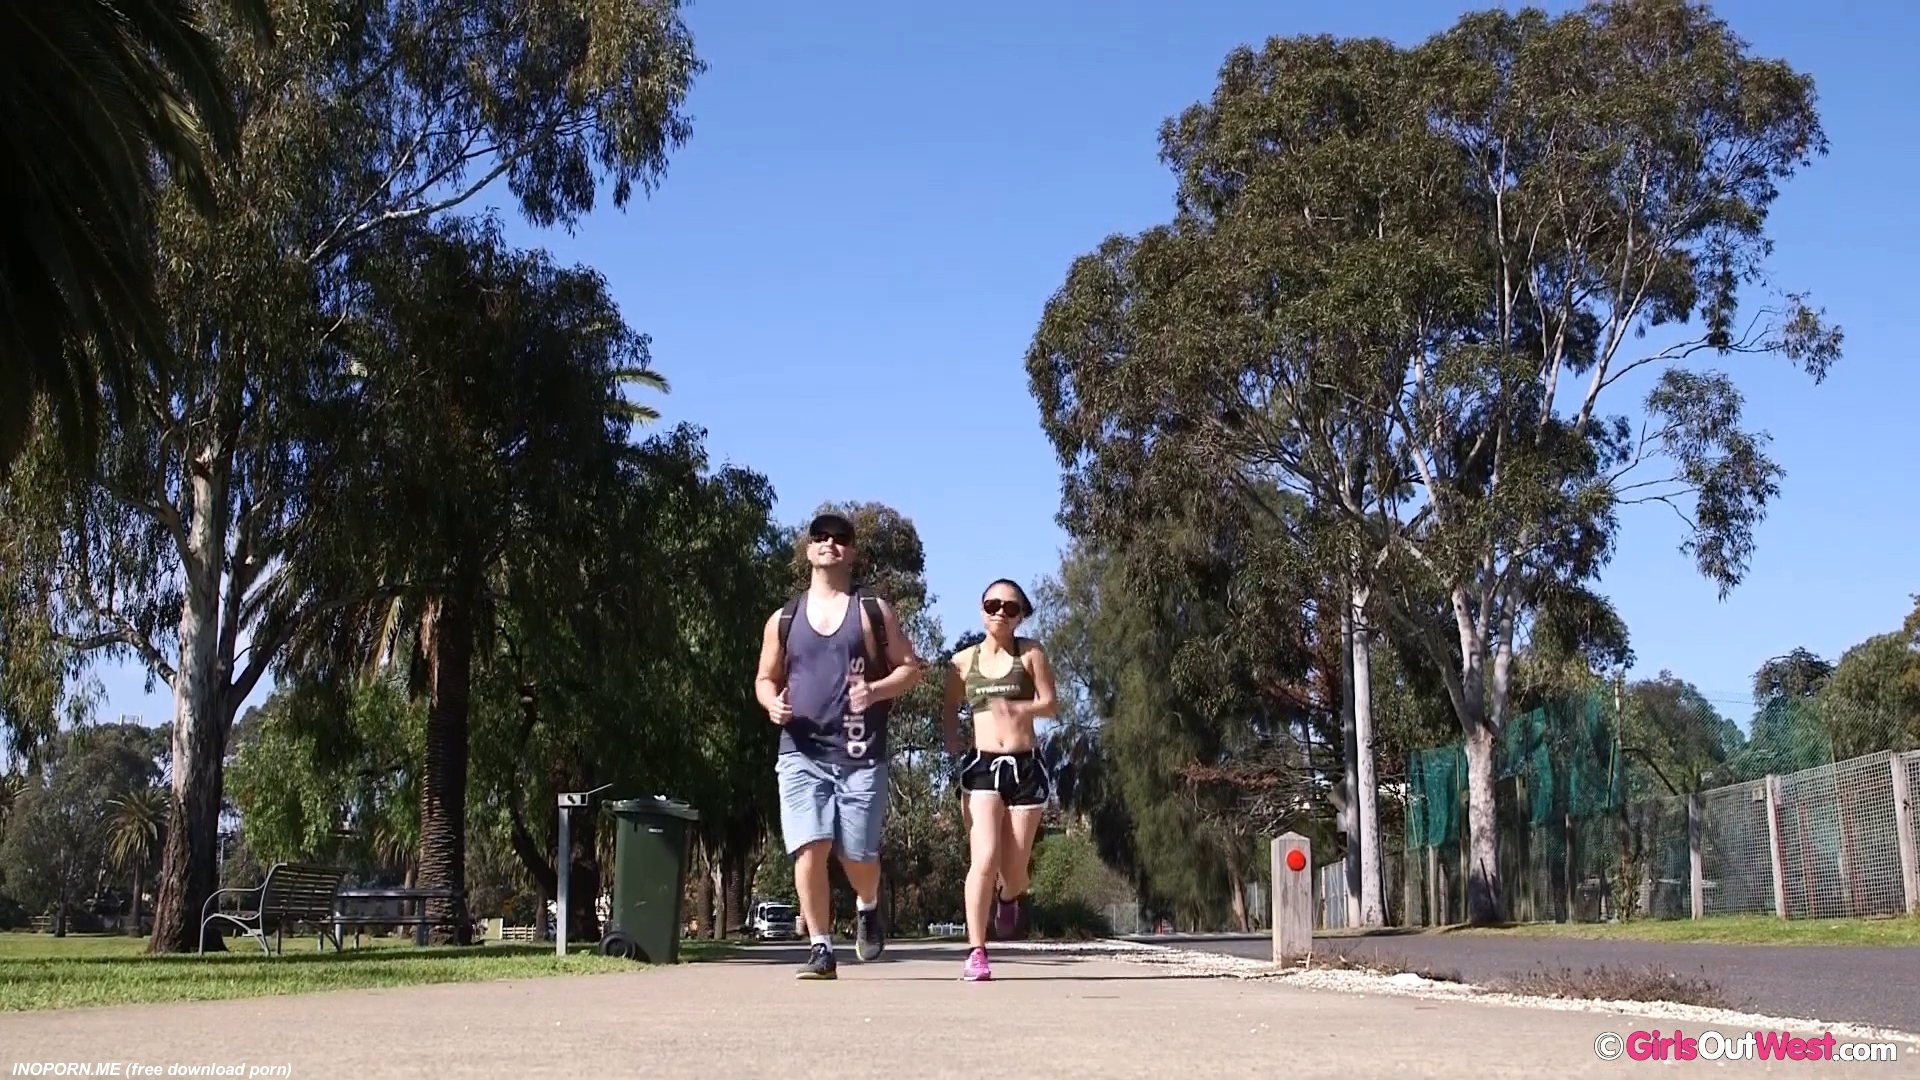 34069_GirlsOutWest_Mimi_and_Robbie_Water_Sports.mp4_snapshot_00.05_123_508lo.jpg